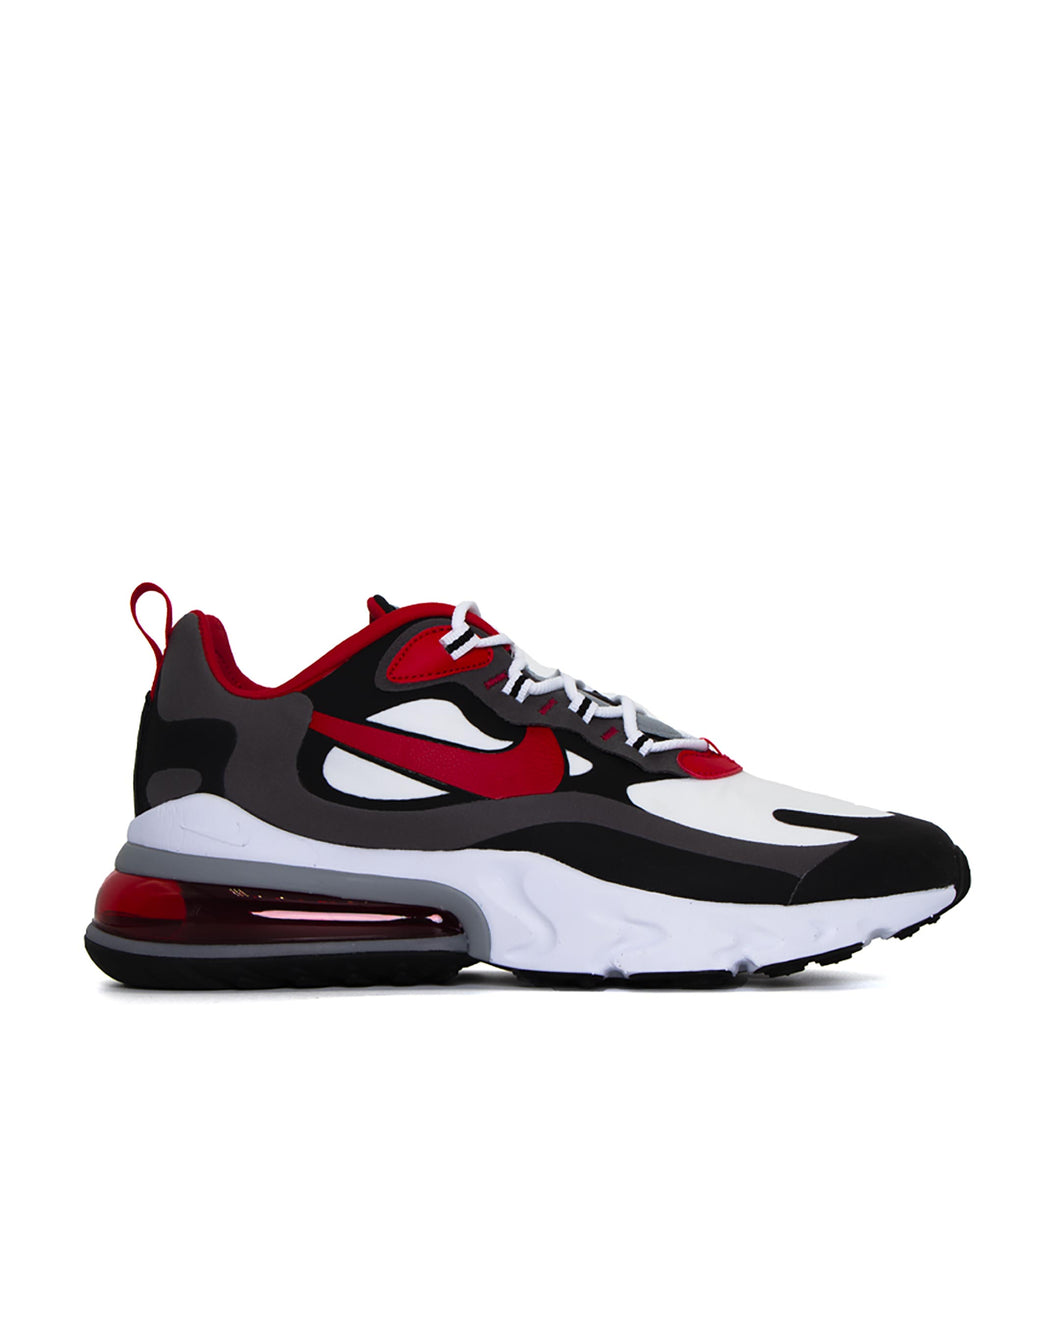 Nike Air Max 270 React Black/University Red-White-Iron Grey